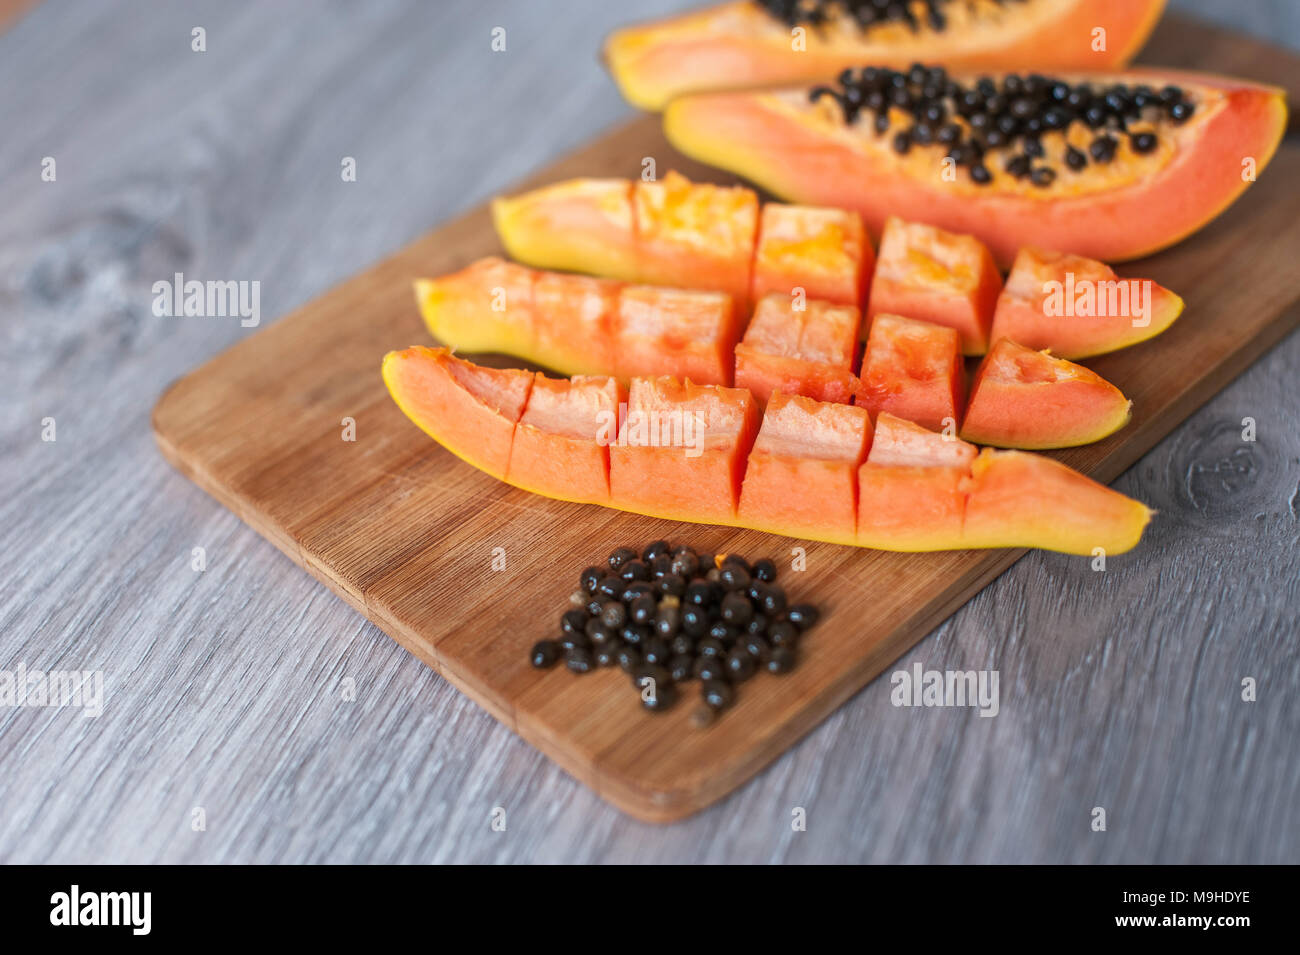 Papaya fruit cut in slices on wooden background - Stock Image